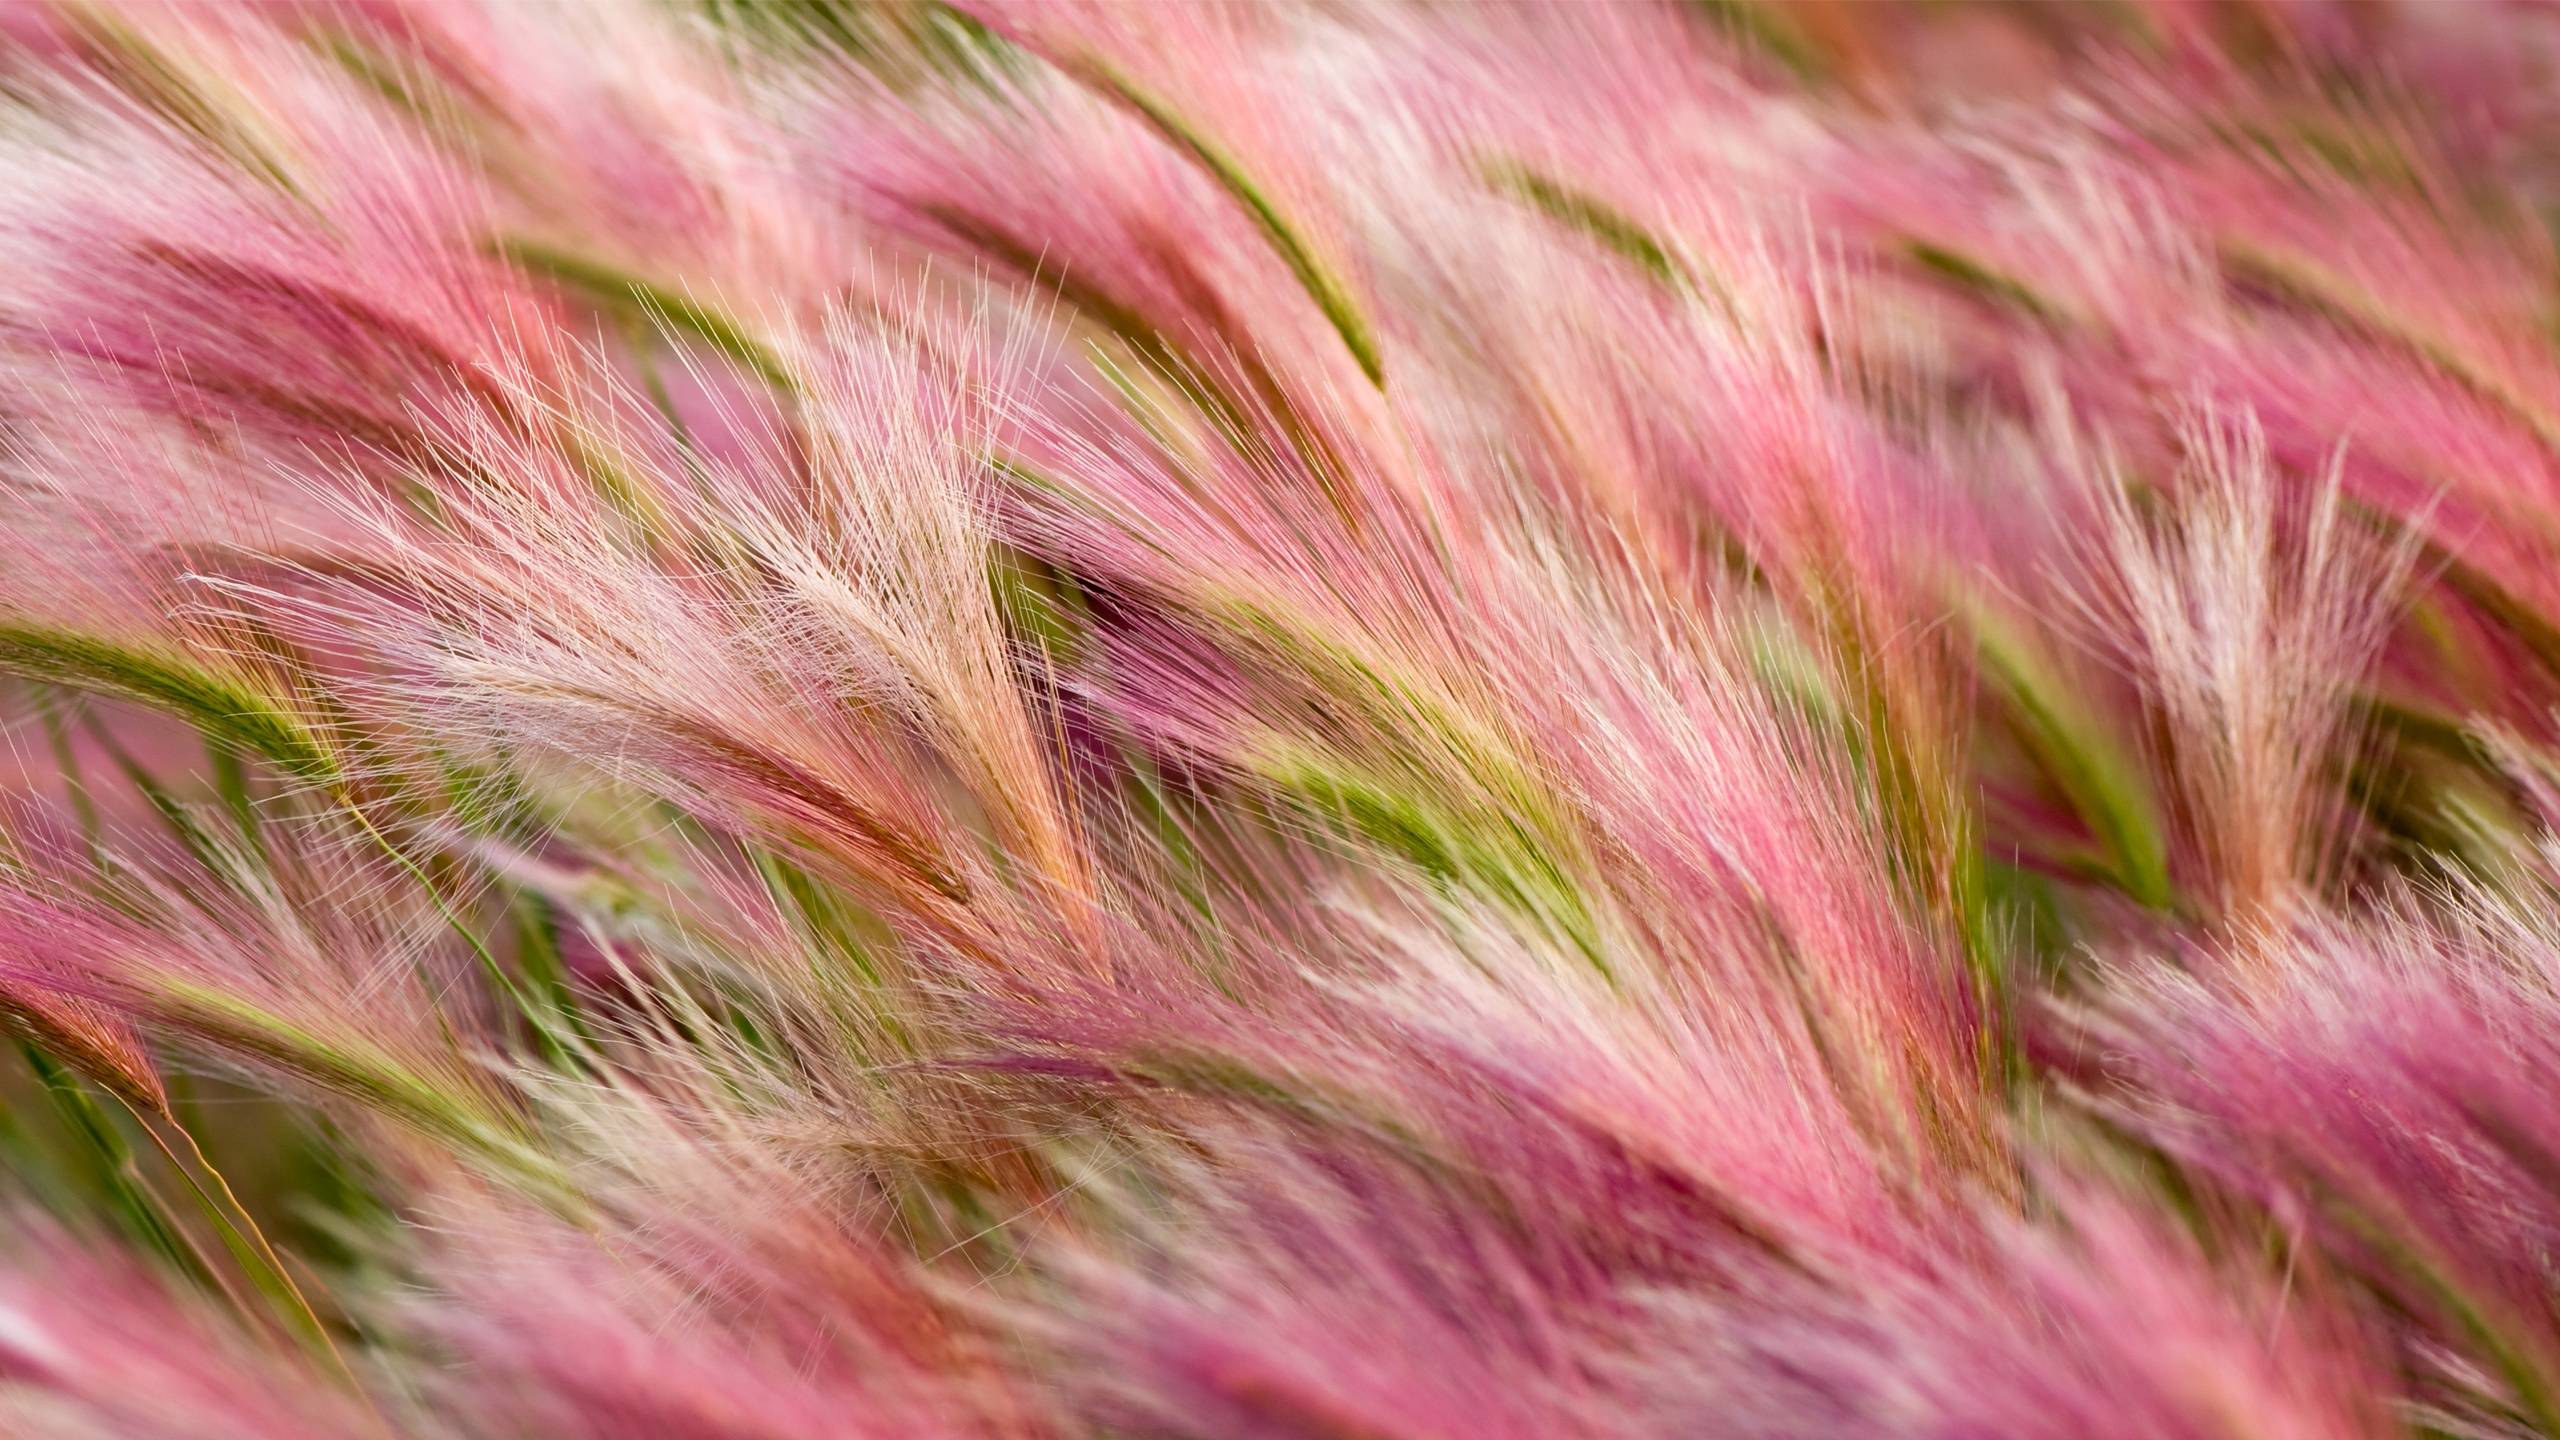 Foxtail Barley Wallpapers in jpg format for free download